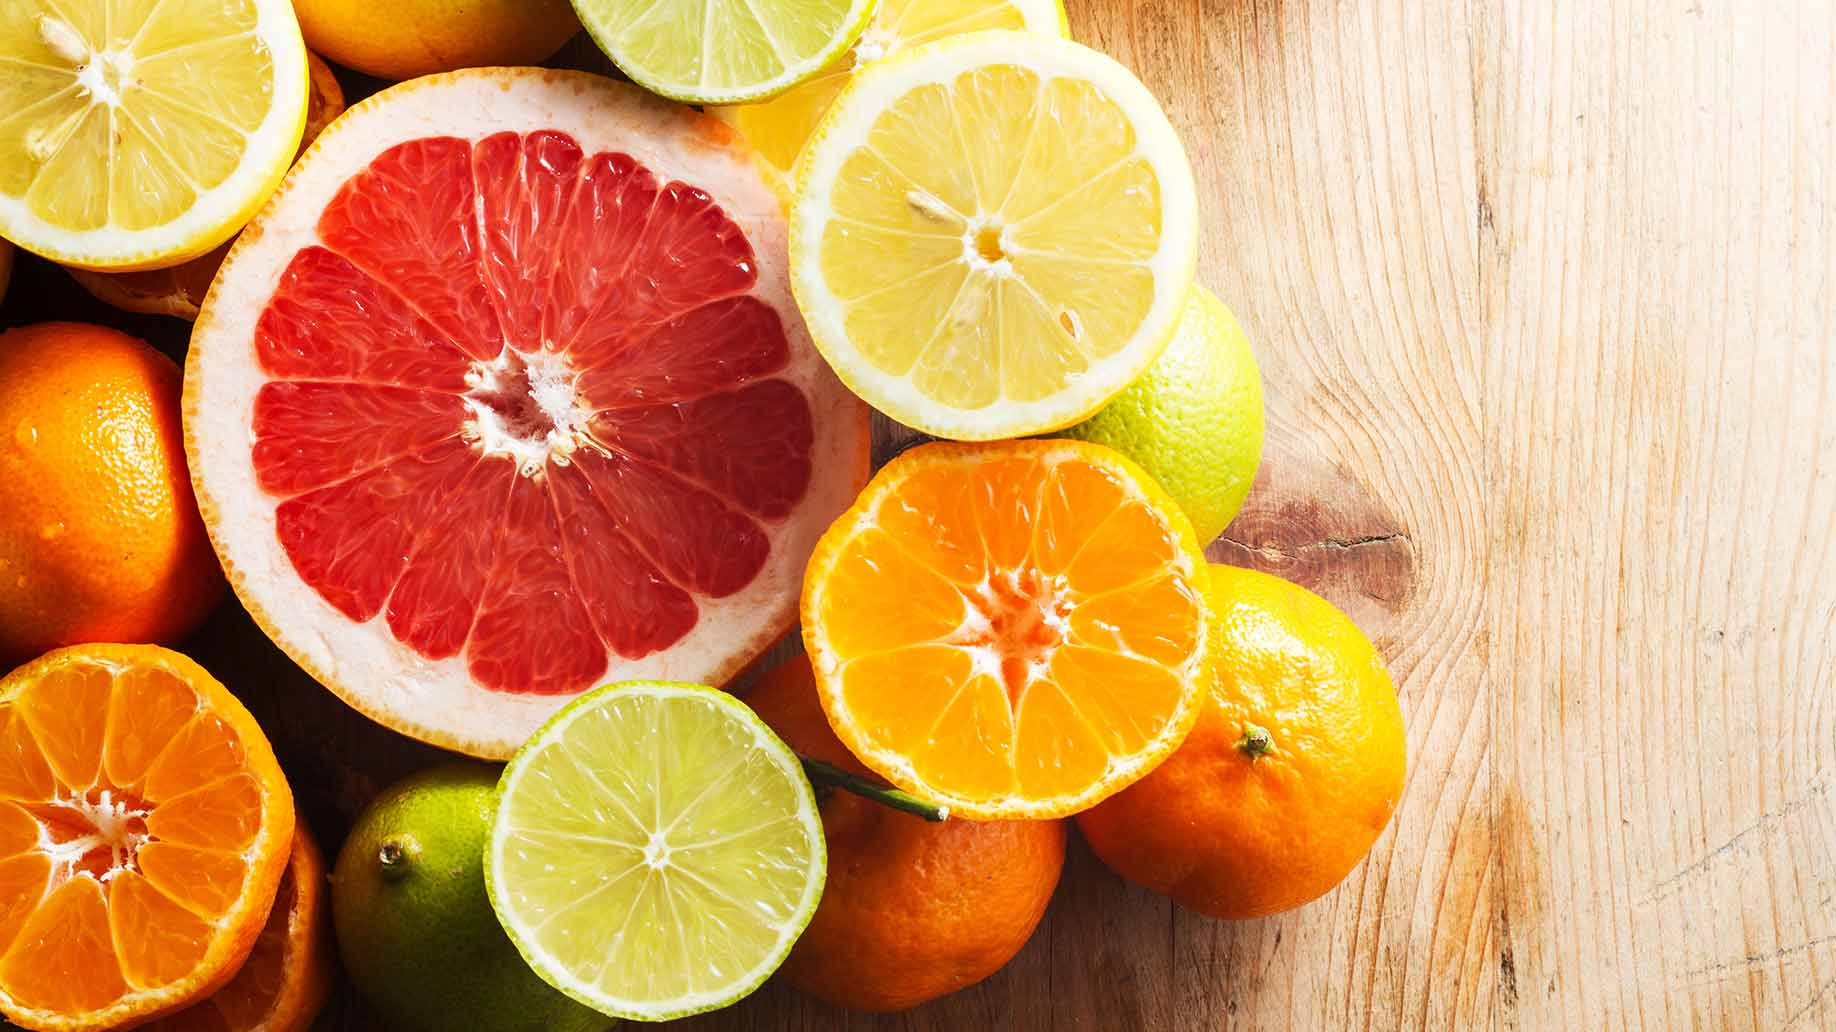 vitamin c fruits orange grapefruit lemons lime health benefits